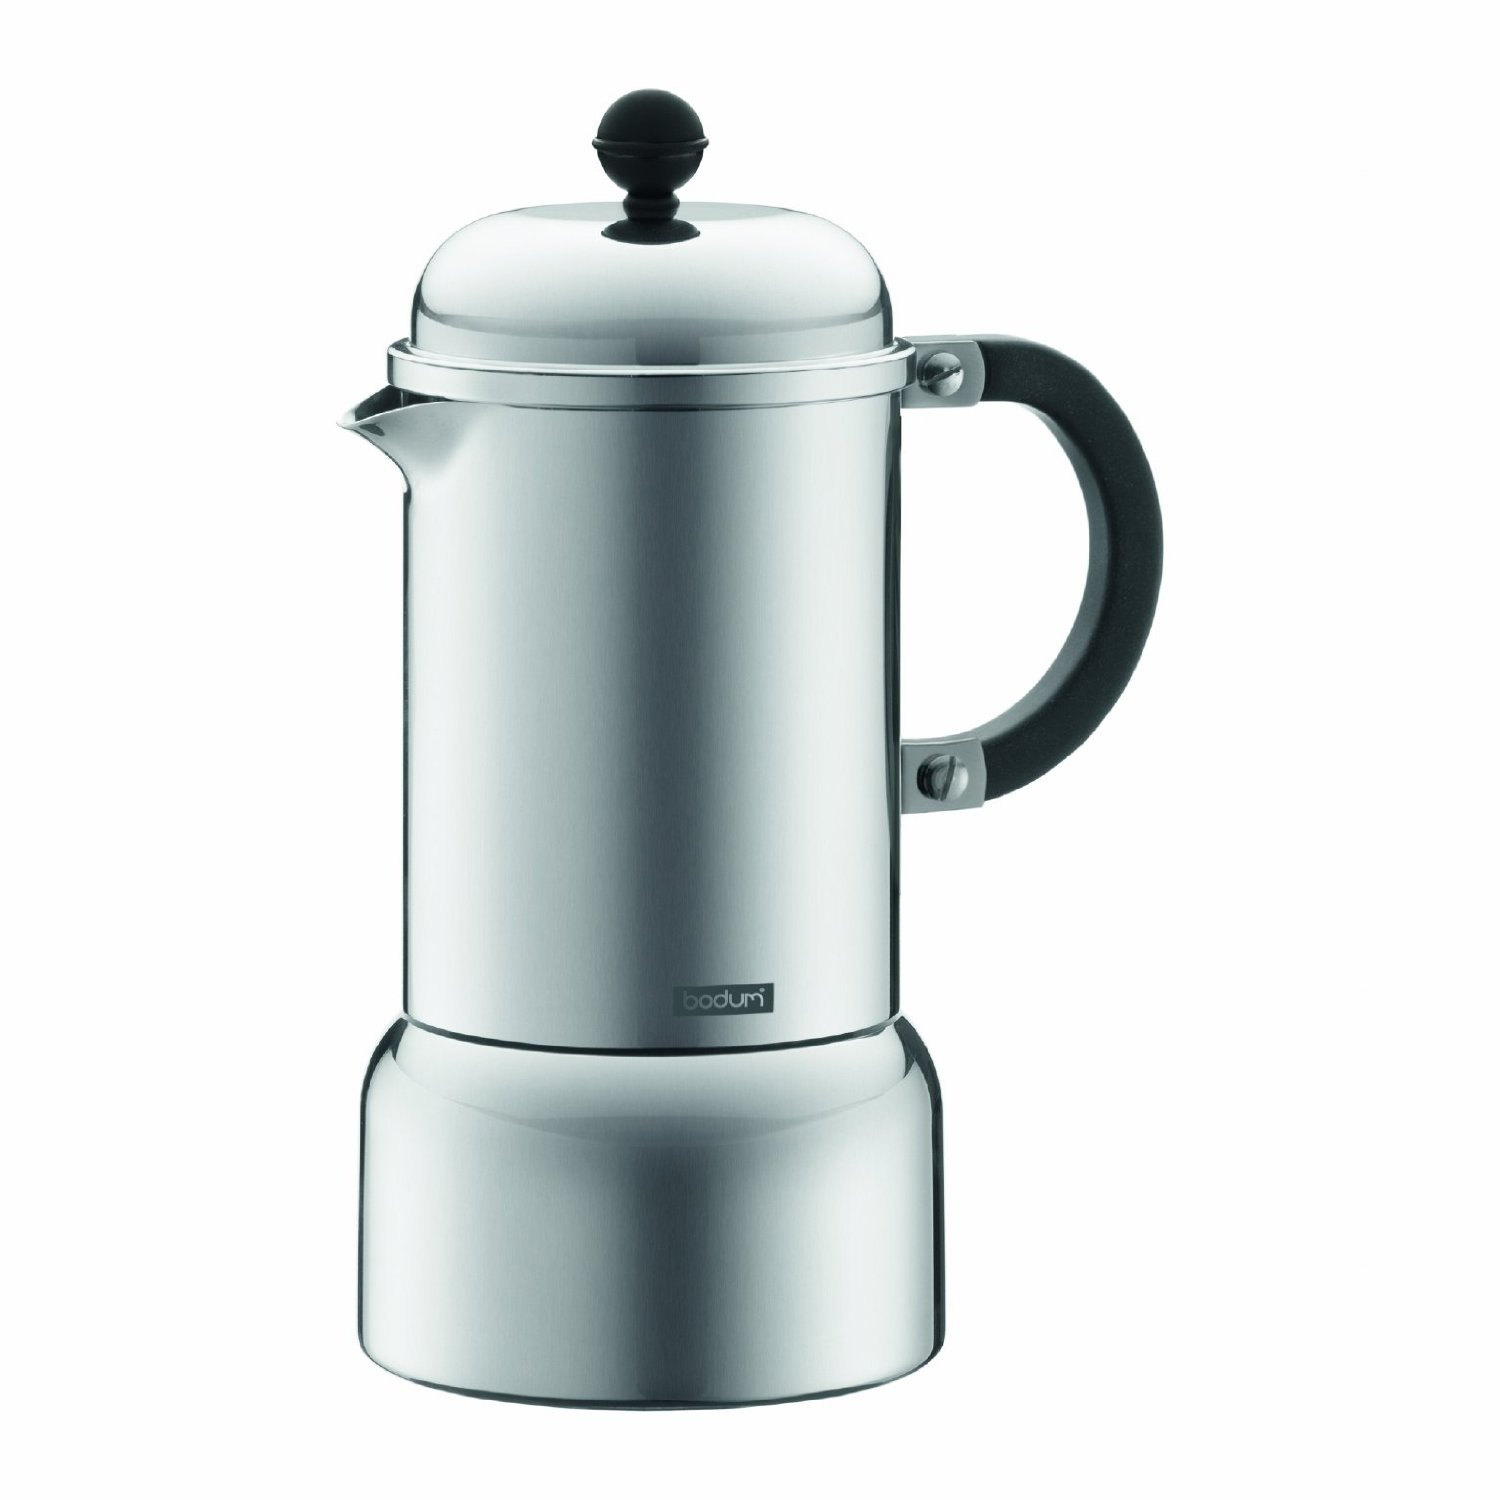 Bed bath beyond french press - Stovetop Coffee Potstovetop Coffee Maker From Bed Bath Beyond